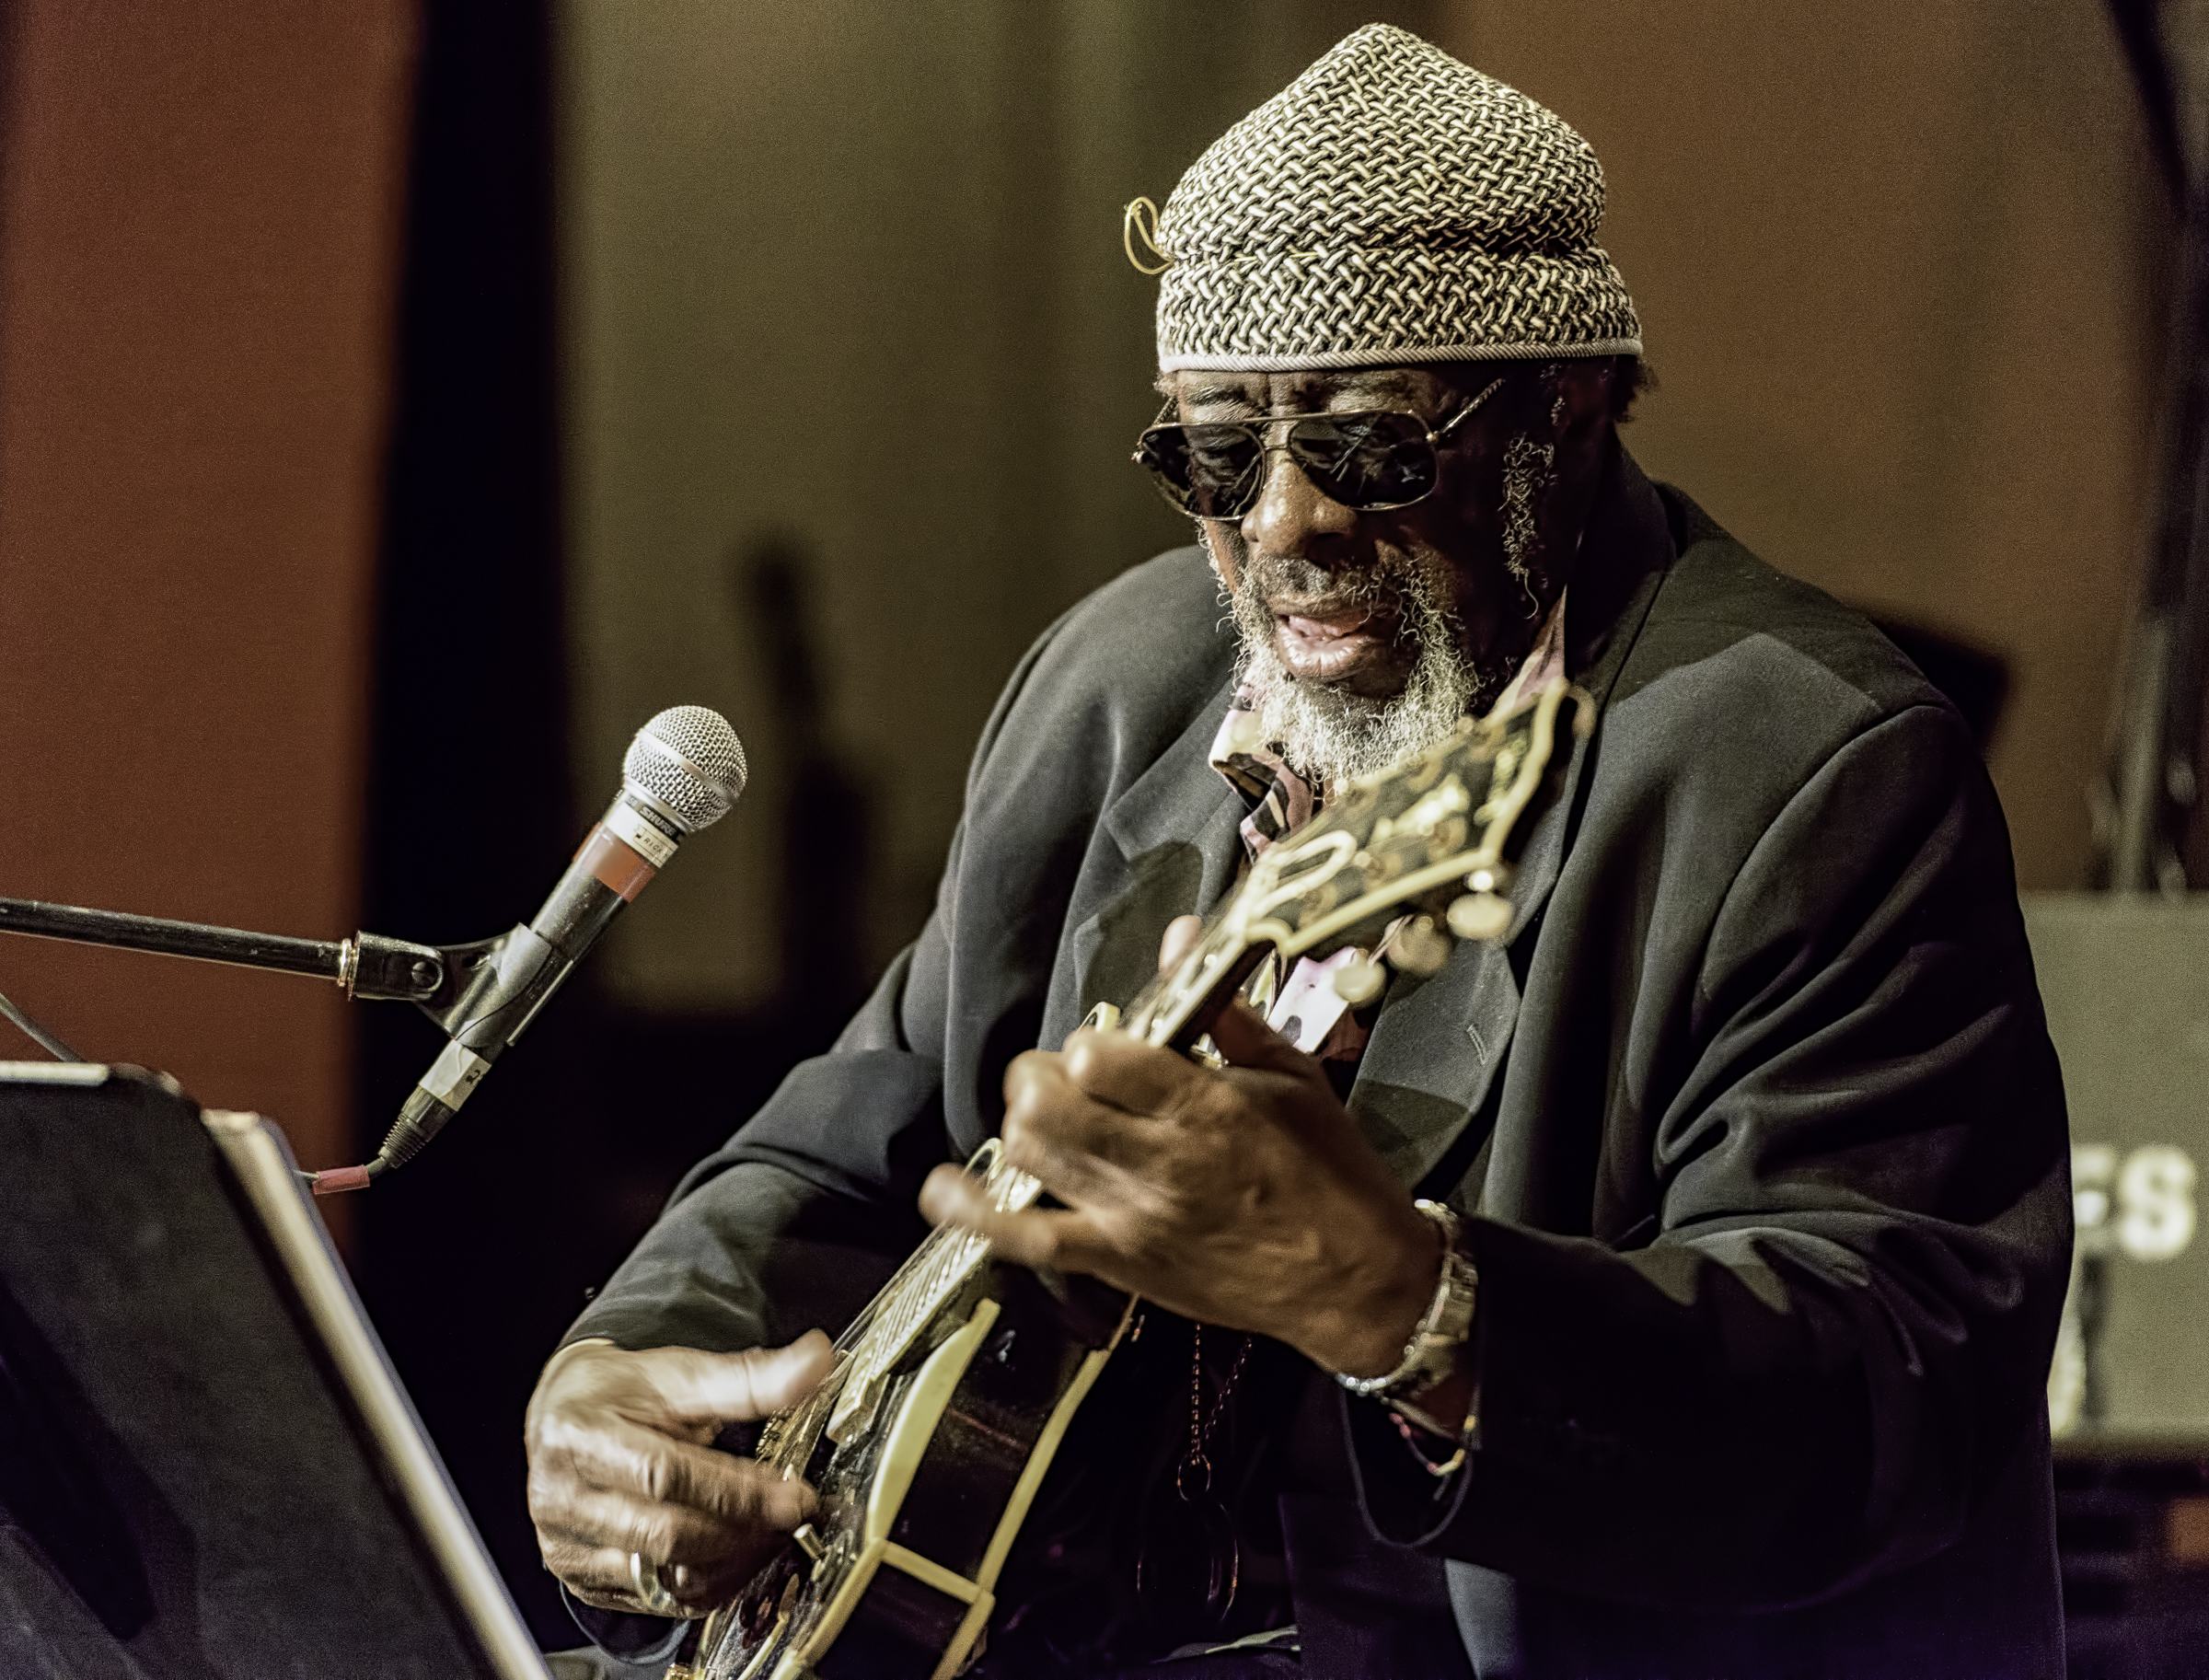 James Blood Ulmer At The NYC Winter Jazzfest 2016